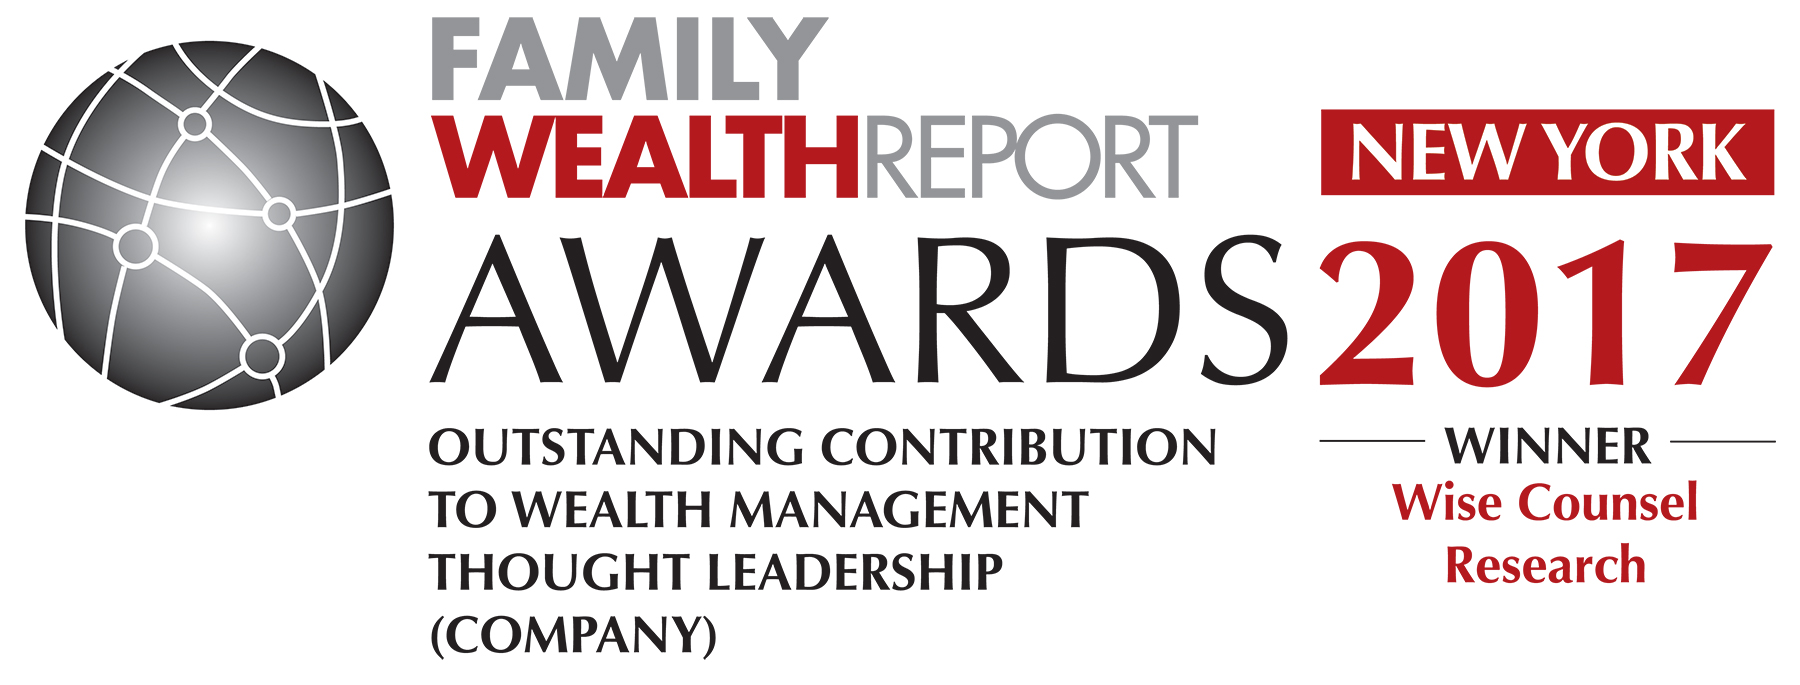 Family Wealth Report AWard Thought Leadership Wise Counsel Research